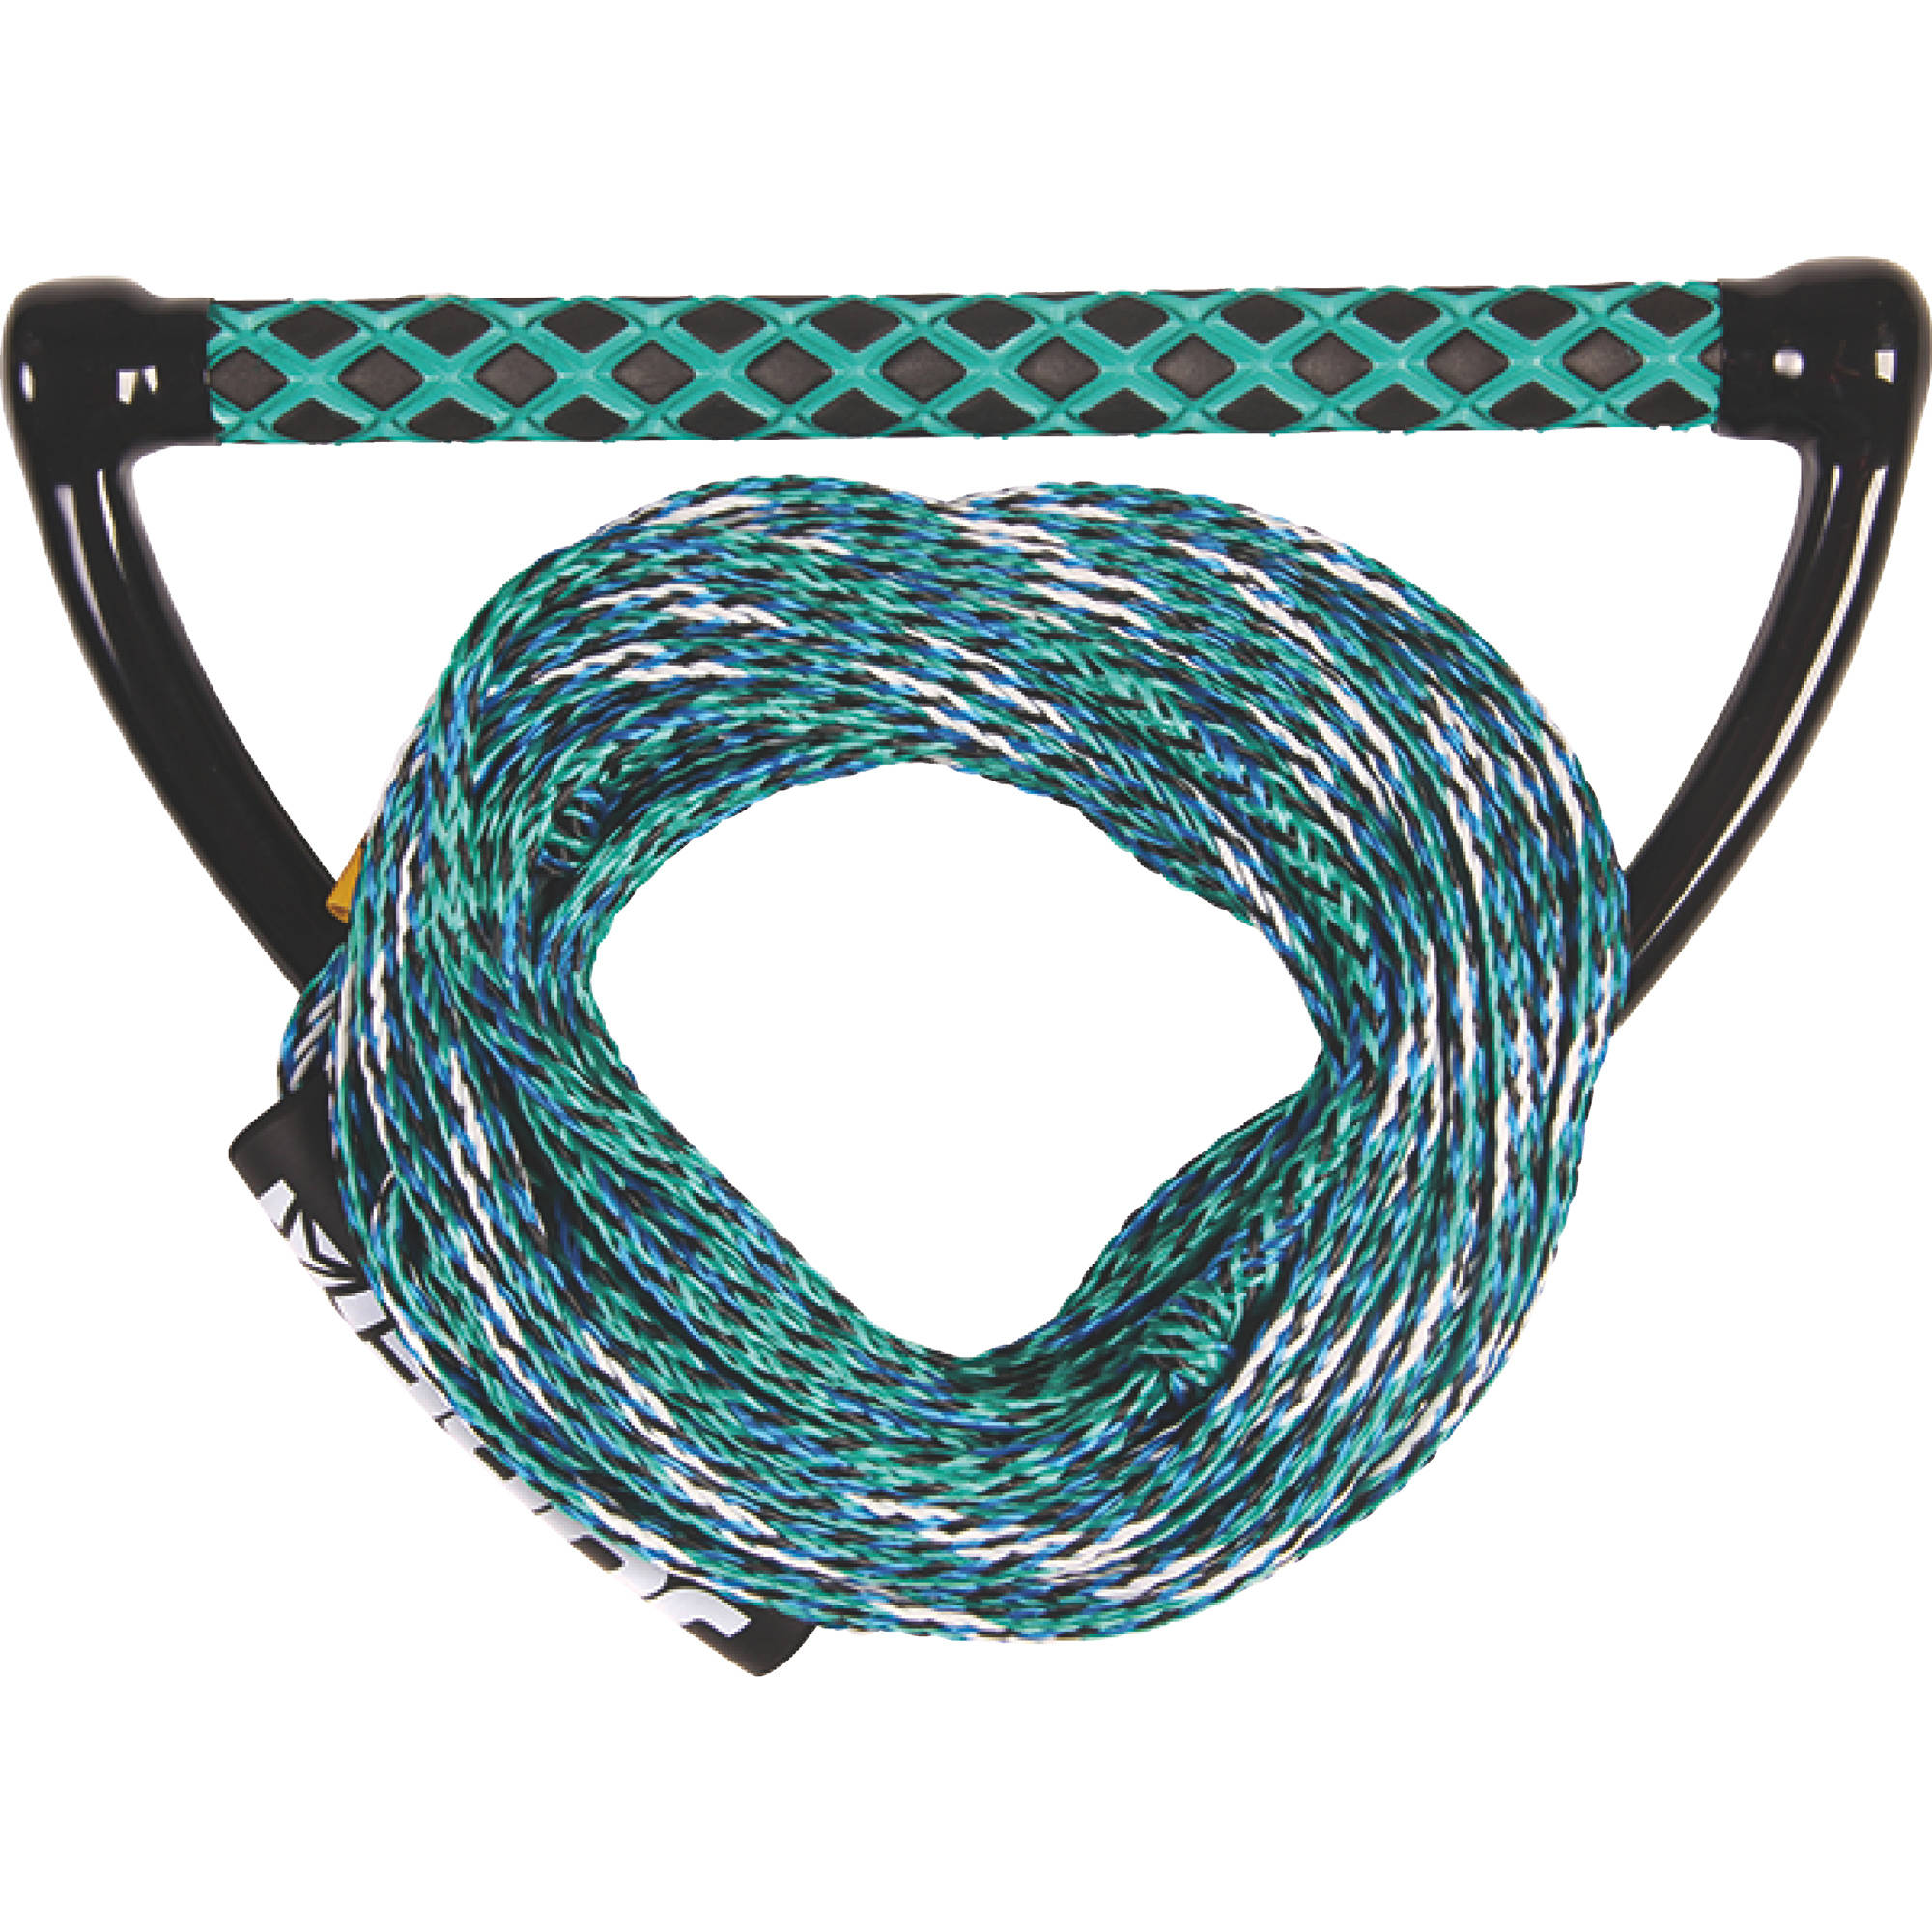 Jobe 211317012 Blue Wakeboard Combo 55' EVA Grip Transfer Rope by Jobe Sport International